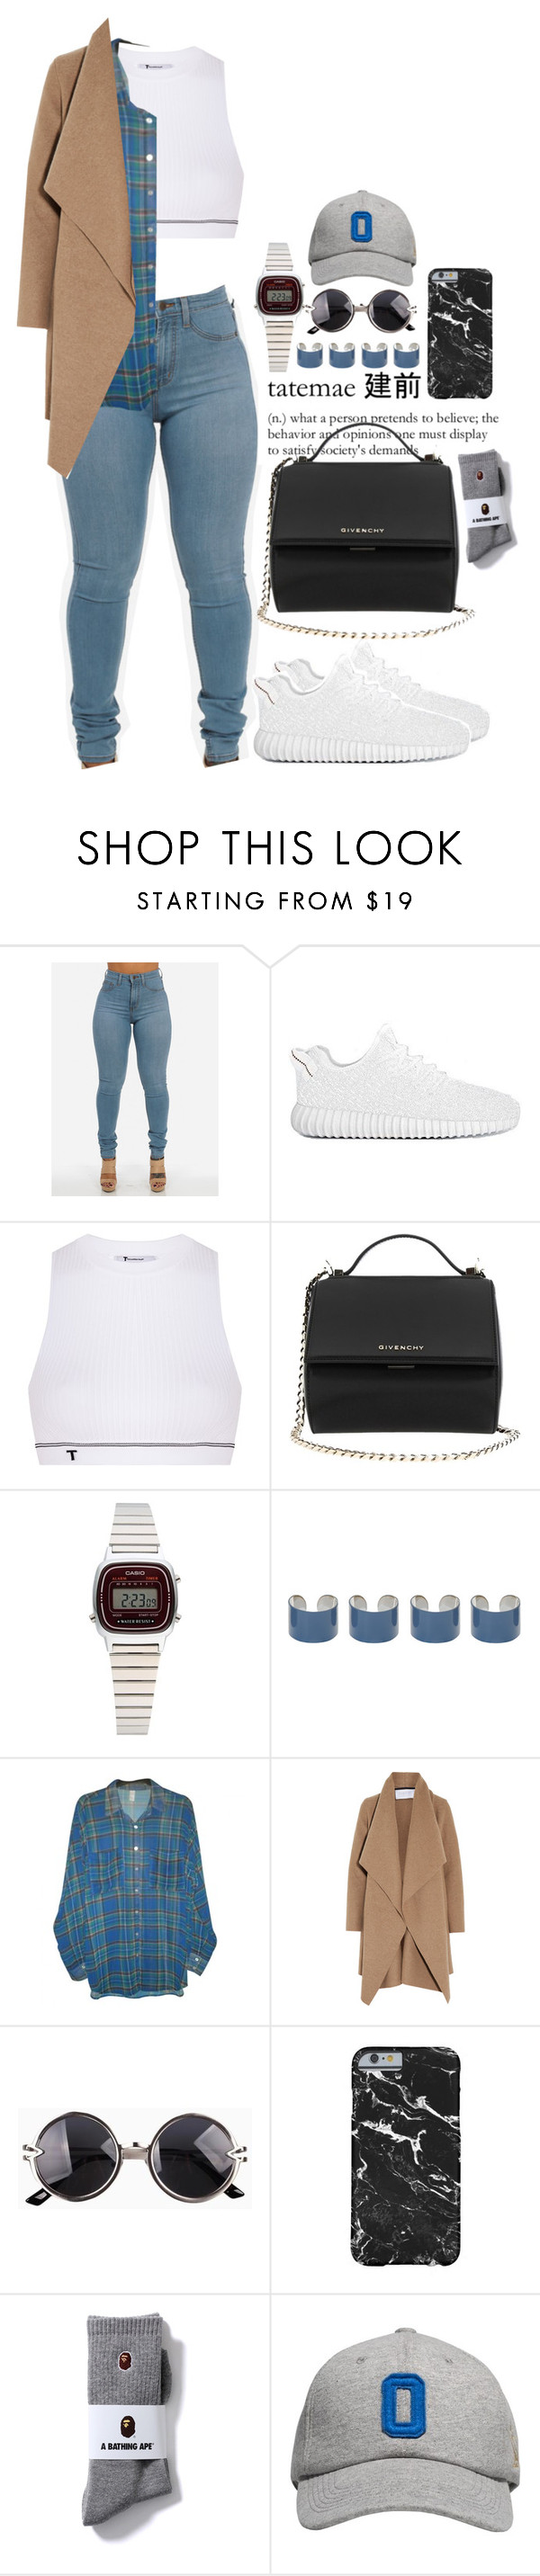 """Untitled #576"" by skaiisaylor ❤ liked on Polyvore featuring T By Alexander Wang, Givenchy, Casio, Maison Margiela, American Apparel, Harris Wharf London, October's Very Own, women's clothing, women and female"